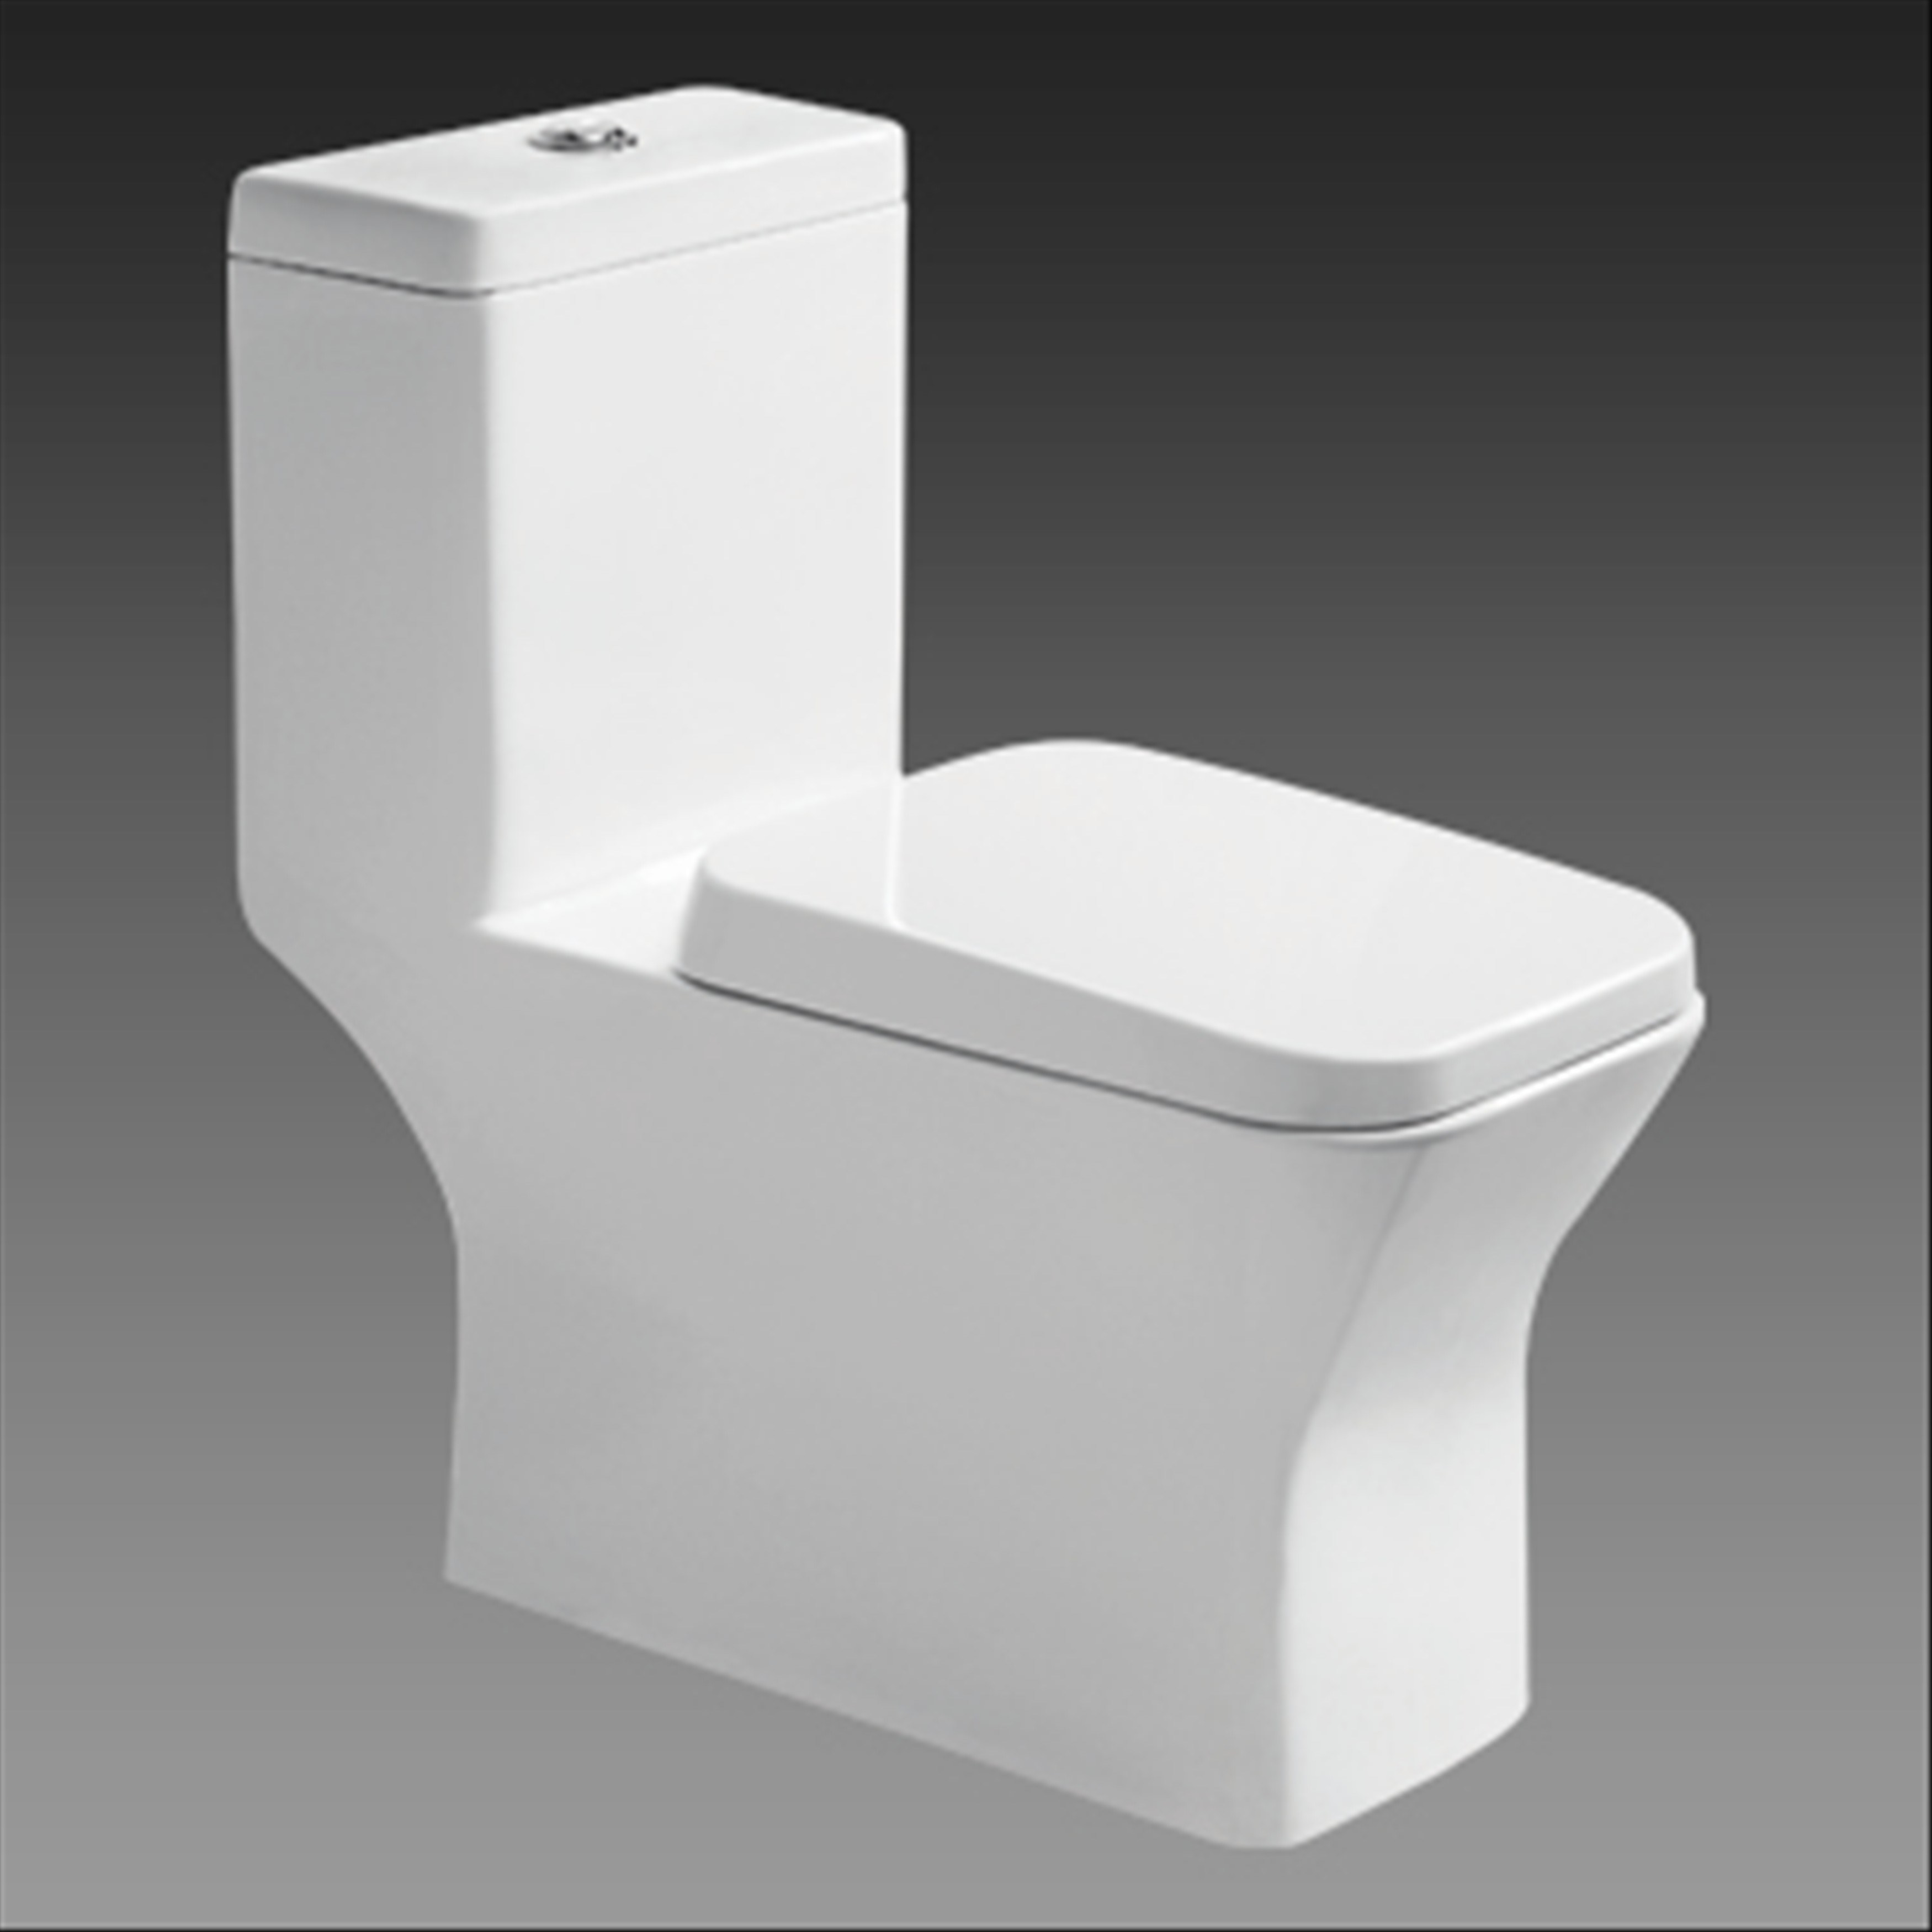 square shaped toilet seat. China Oxo Toilet Style Square Shape One Piece